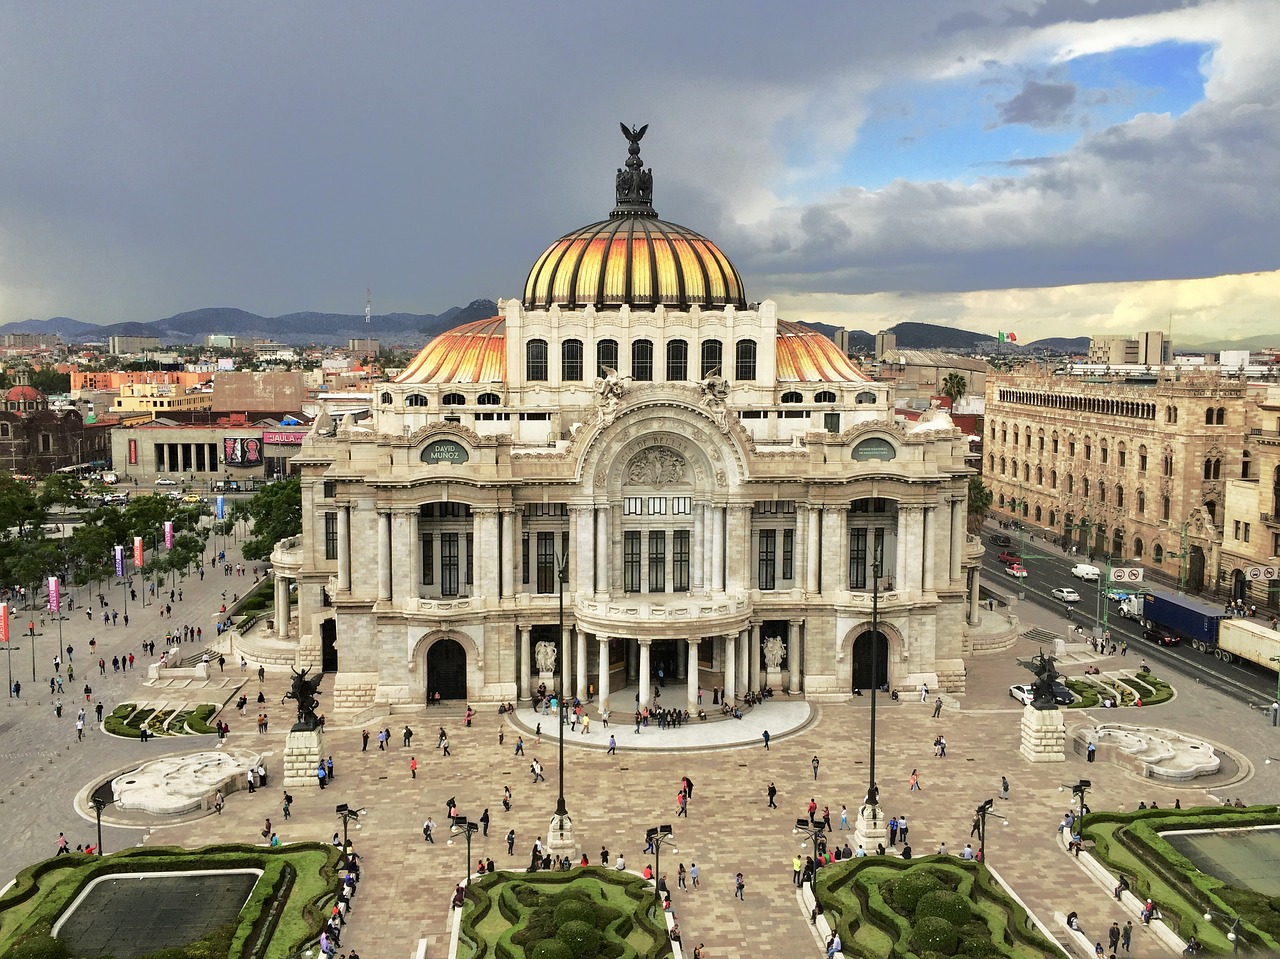 Top 7 Booze Cities Around the World - Mexico